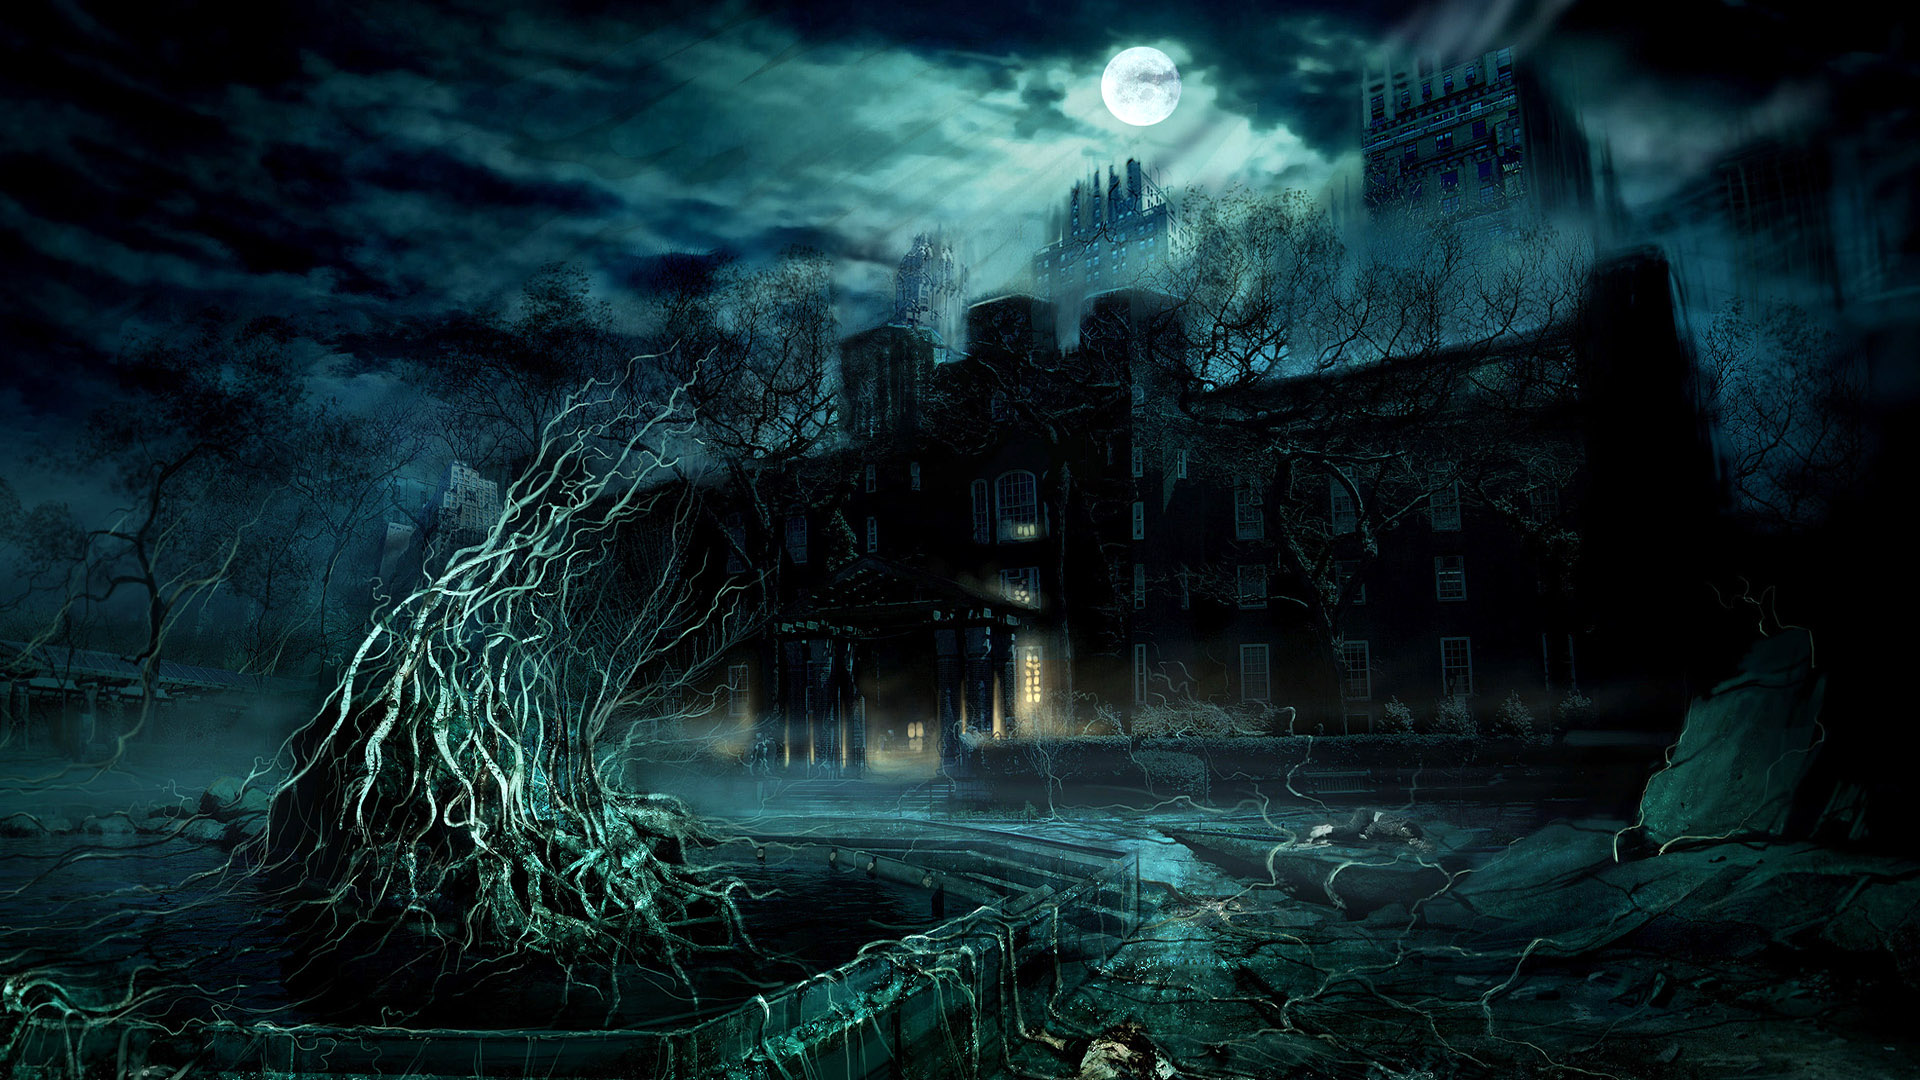 Array Dark Castle Fantasy Wallpaper Wallpaper WallpaperLepi 1920x1080